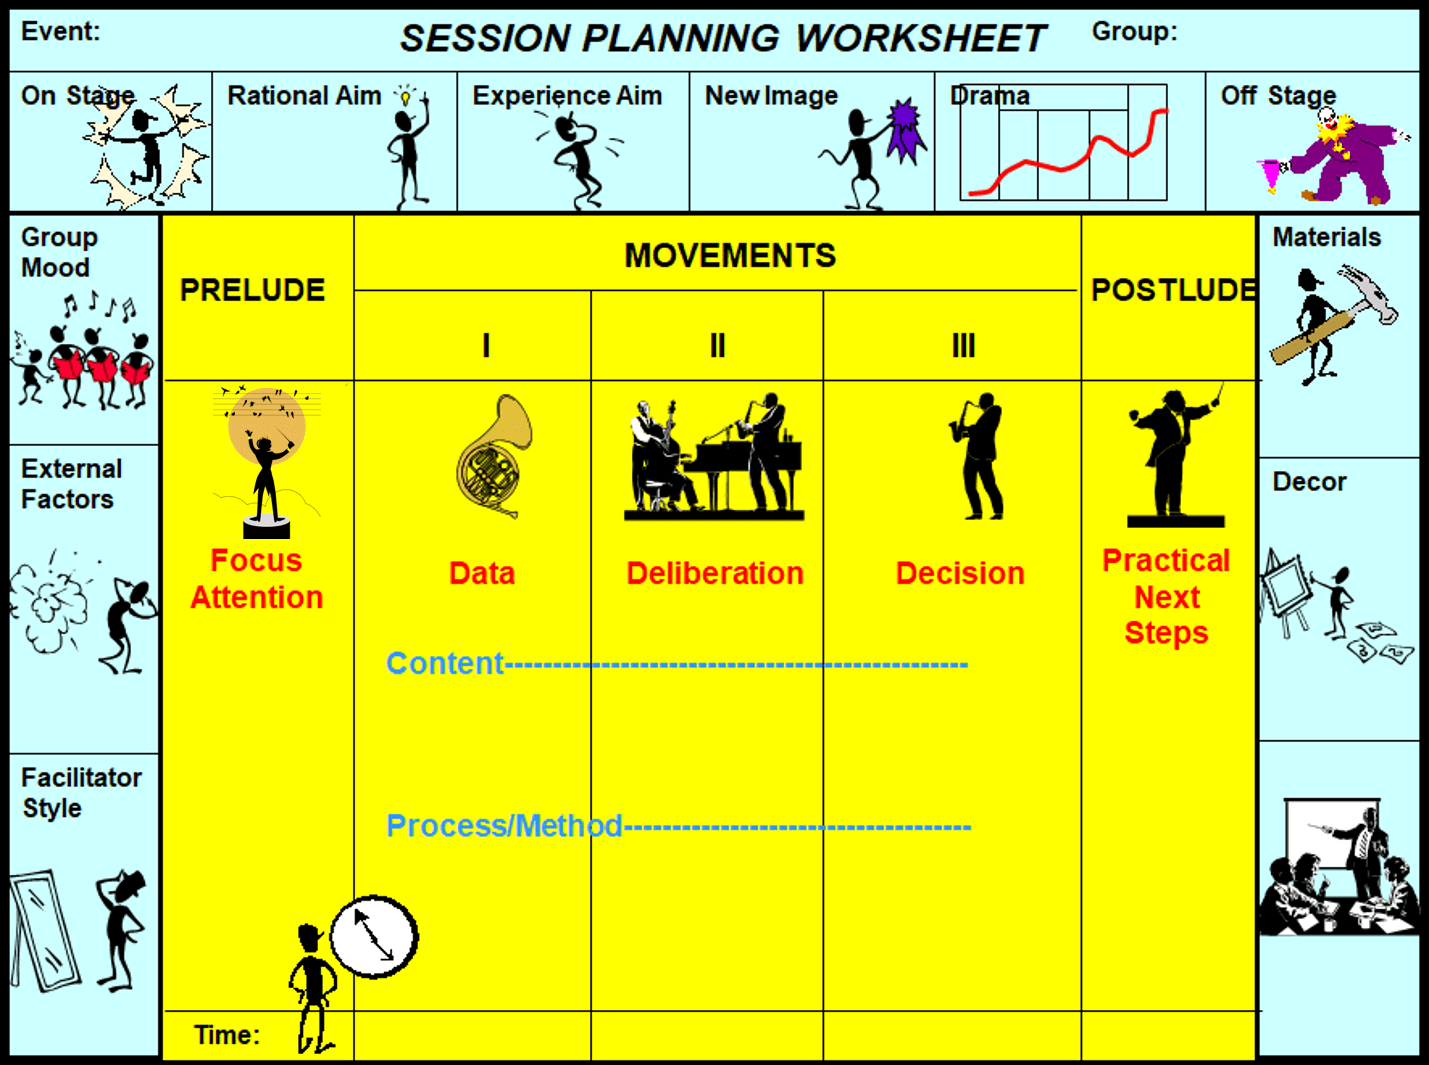 Session Planning Worksheet In Color Ica Social Research